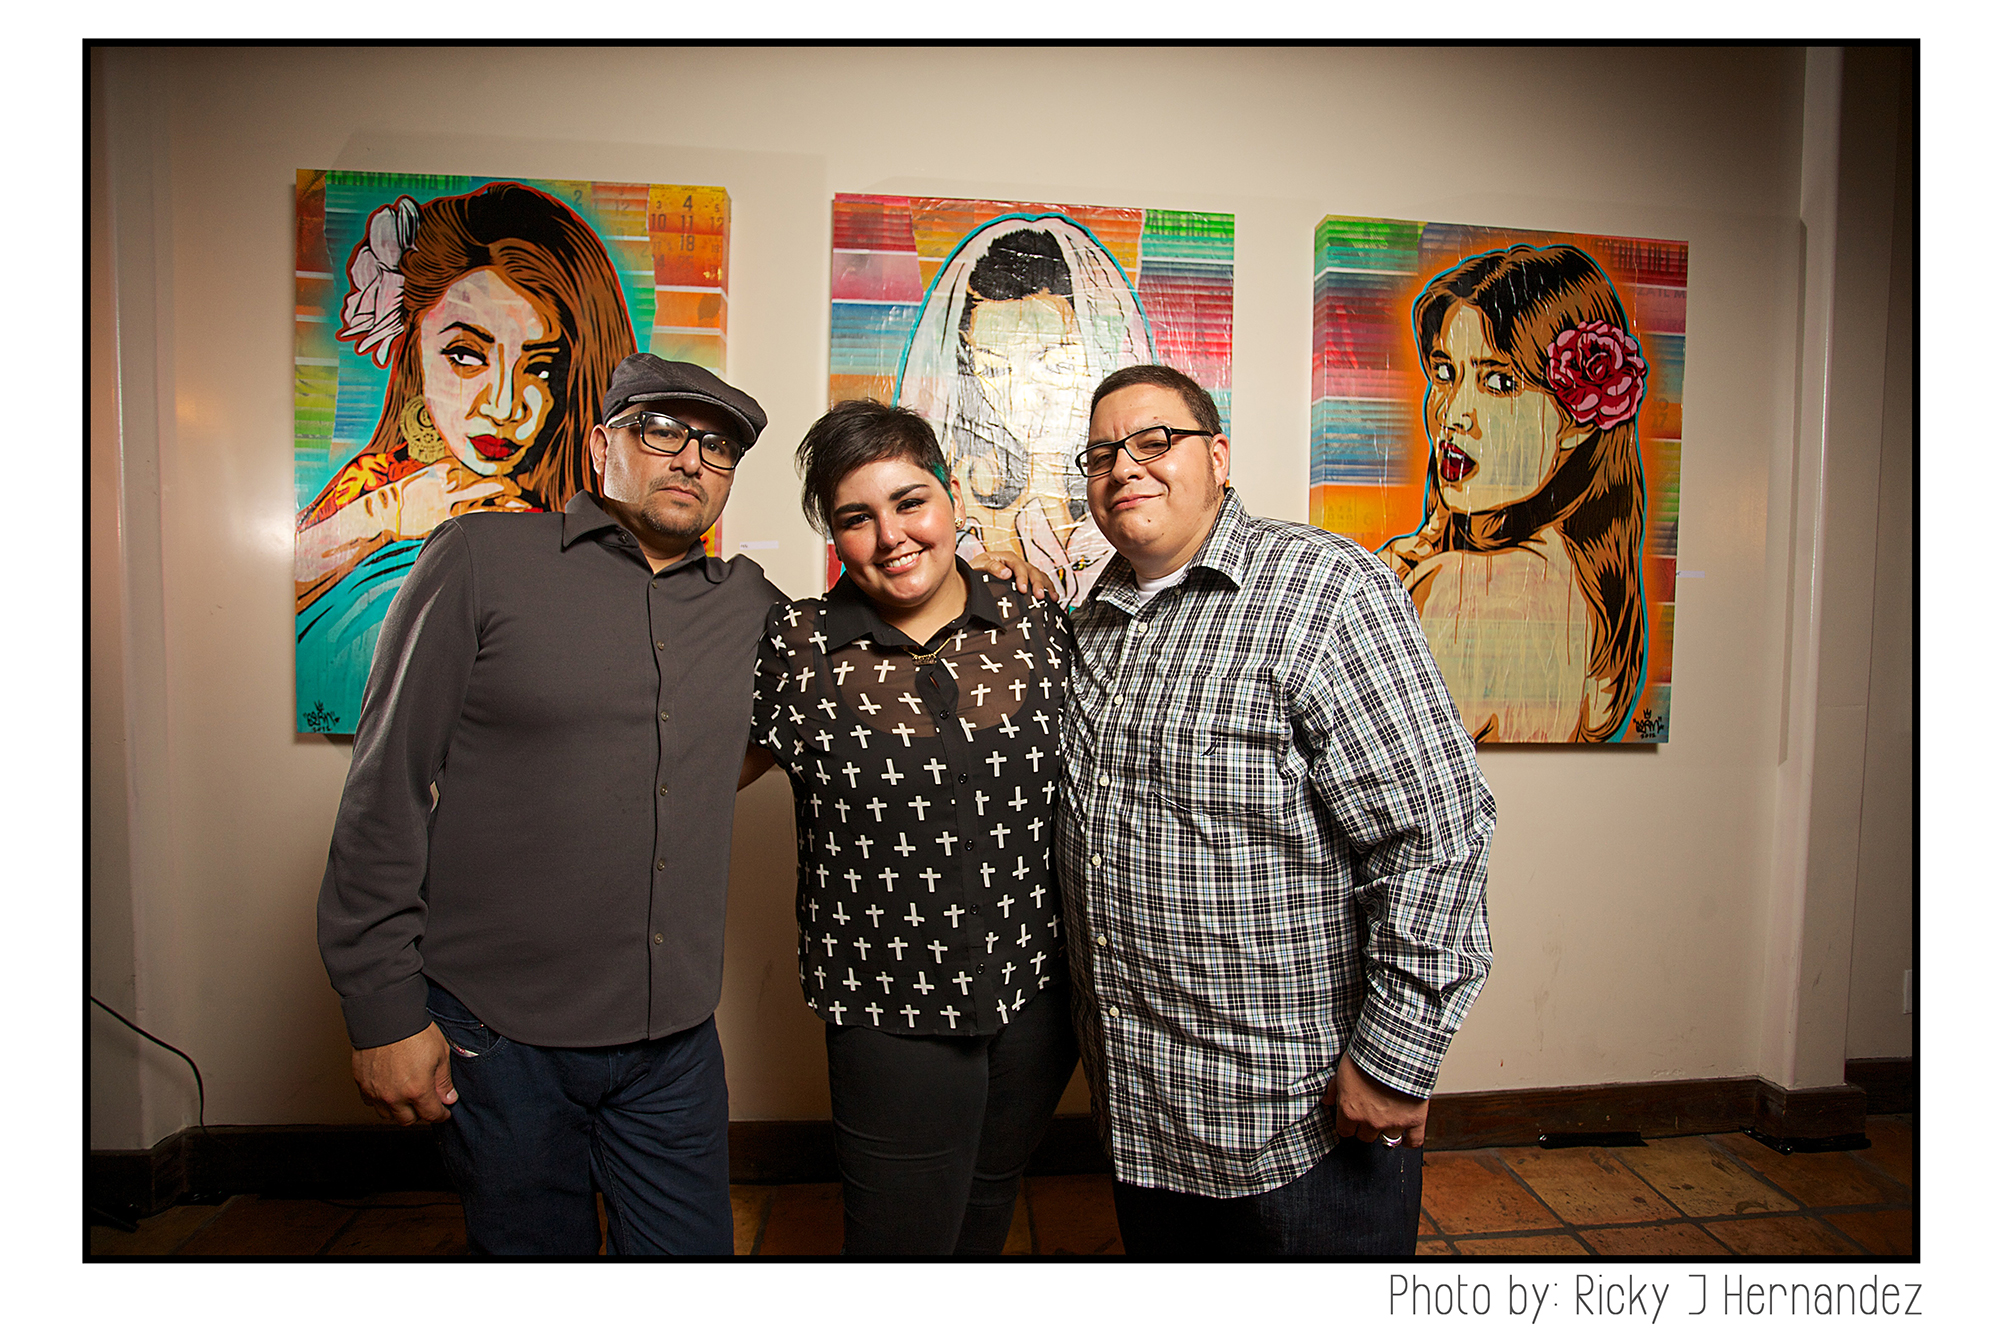 Ricky-J-Hernandez-photography-Oh-poop-I-have-Lupus-art-show-for-Delia-sweet-tooth-in-Privy-studio-Los-Angeles-CA-065